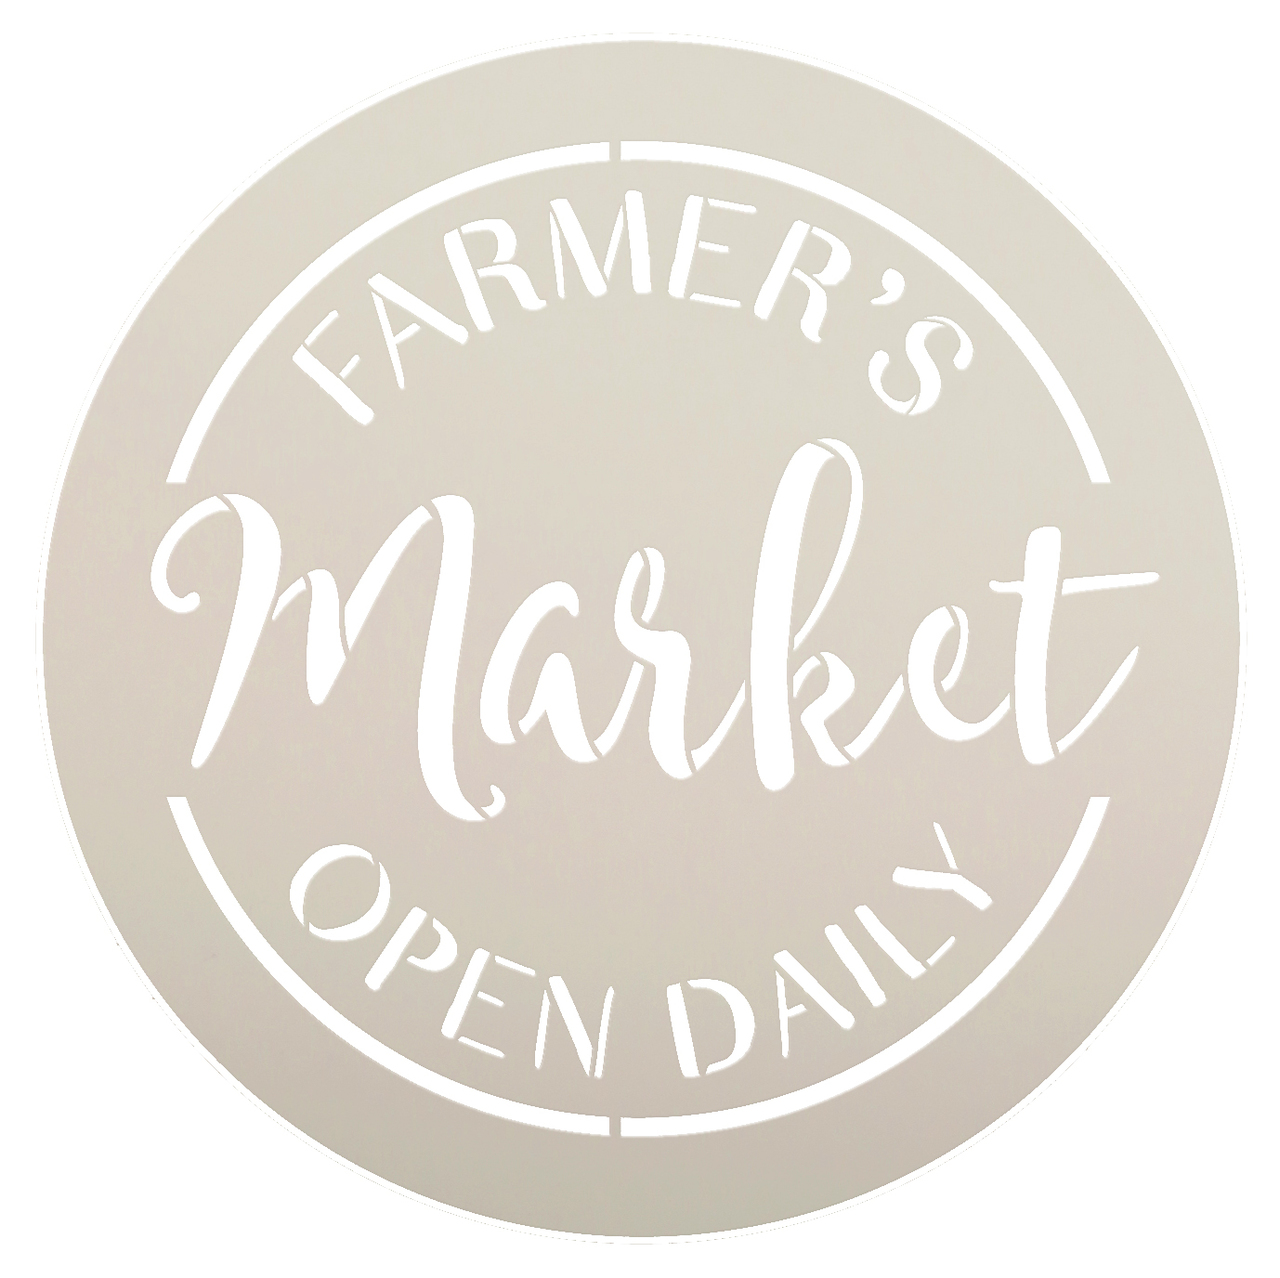 "Farmer's Market Open Daily Stencil by StudioR12 - Country Word Art - 18"" Round - STCL2456_4"